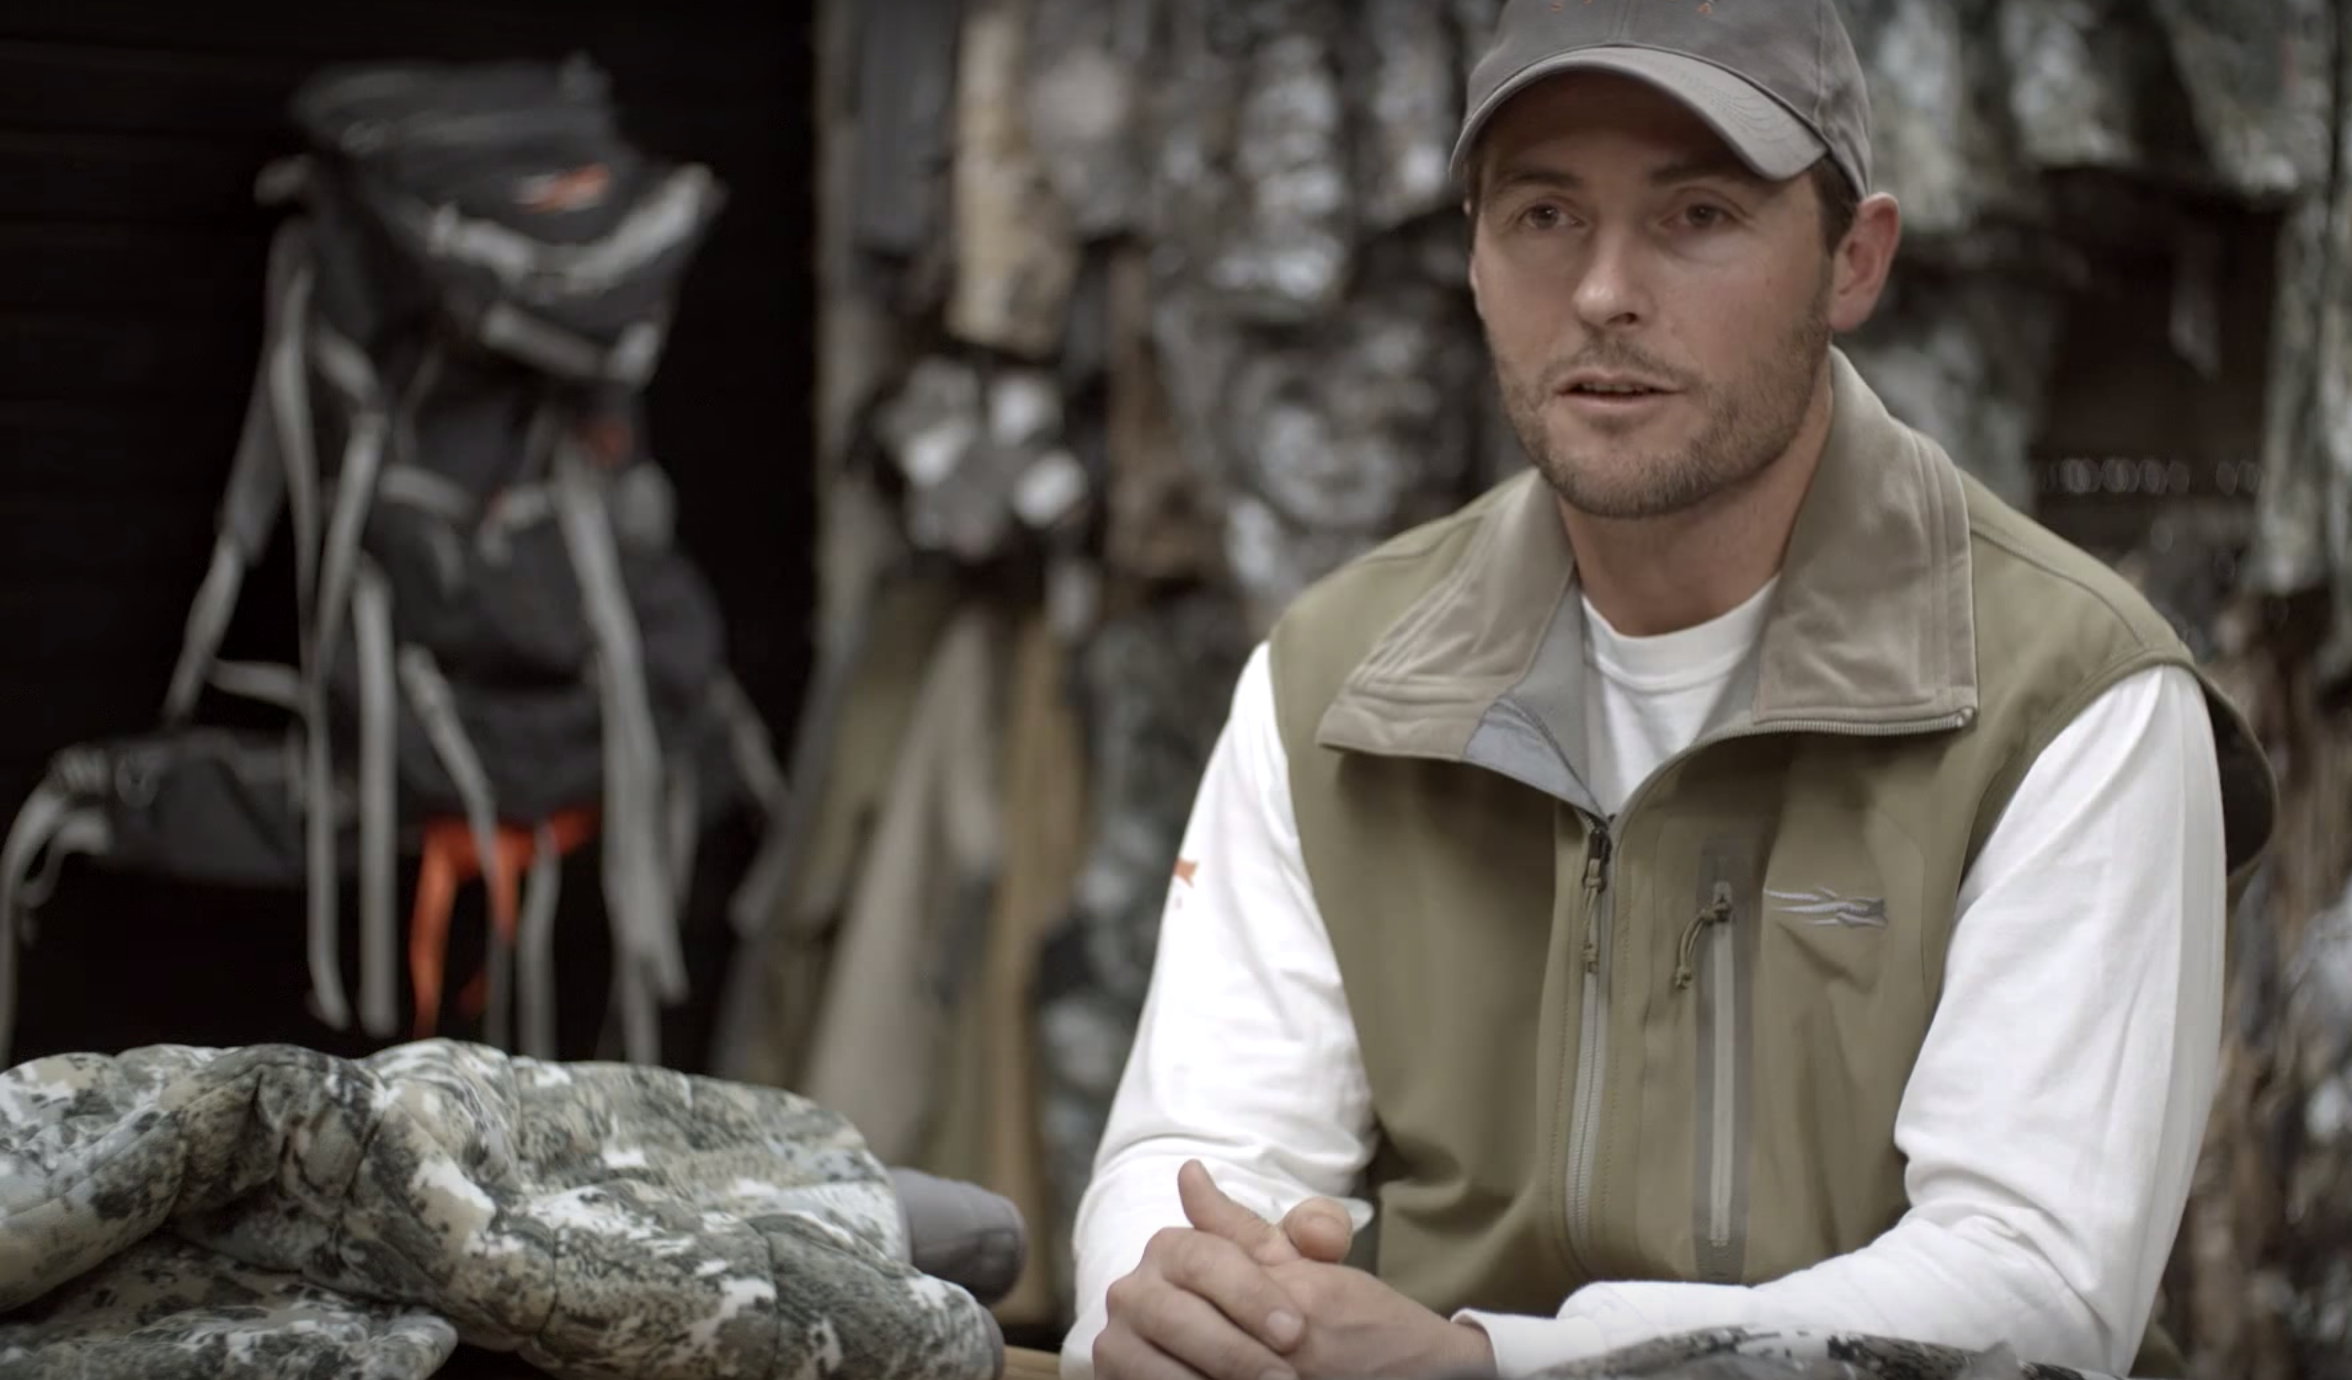 OPENING CONVOCATION - with Sitka Gear Founder, Jonathan Hart